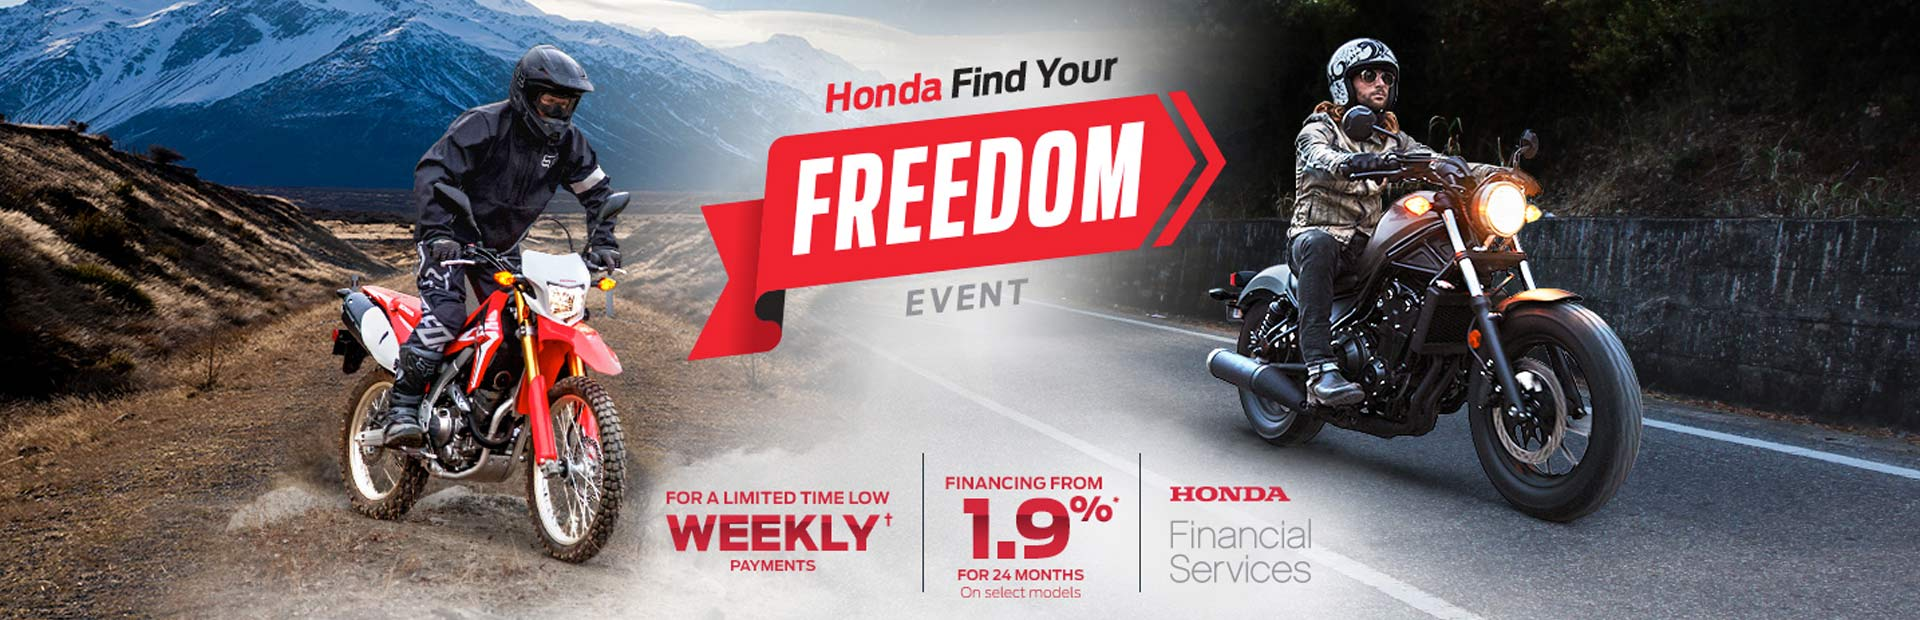 Honda: Find Your Freedom Event